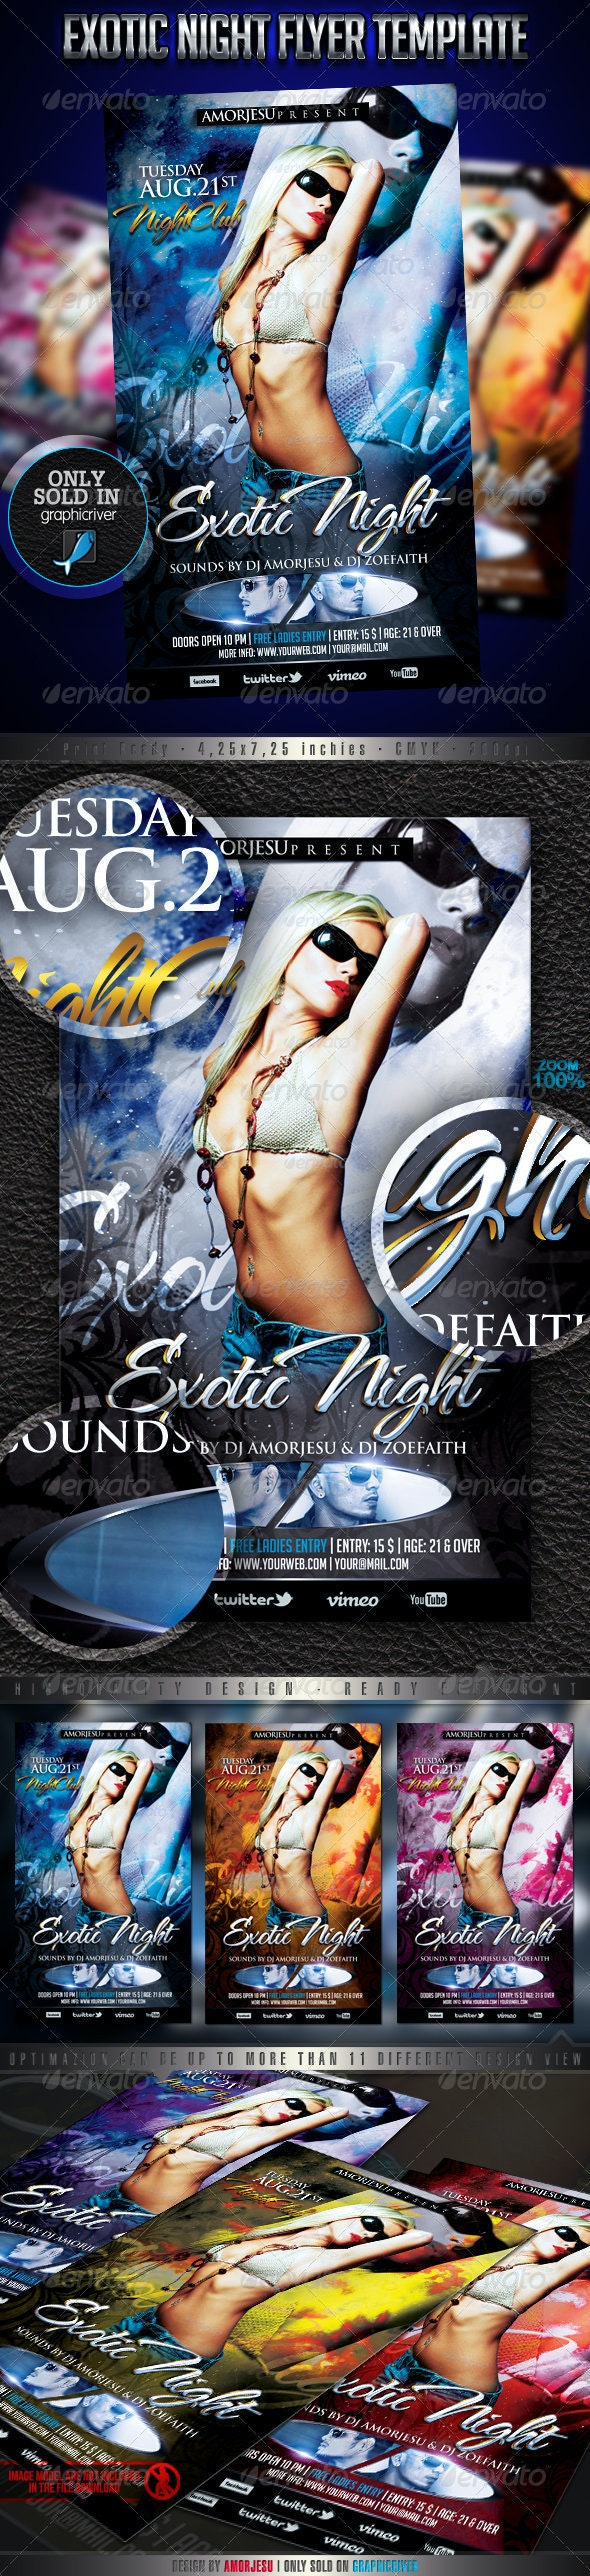 Exotic Night Flyer Template - Events Flyers